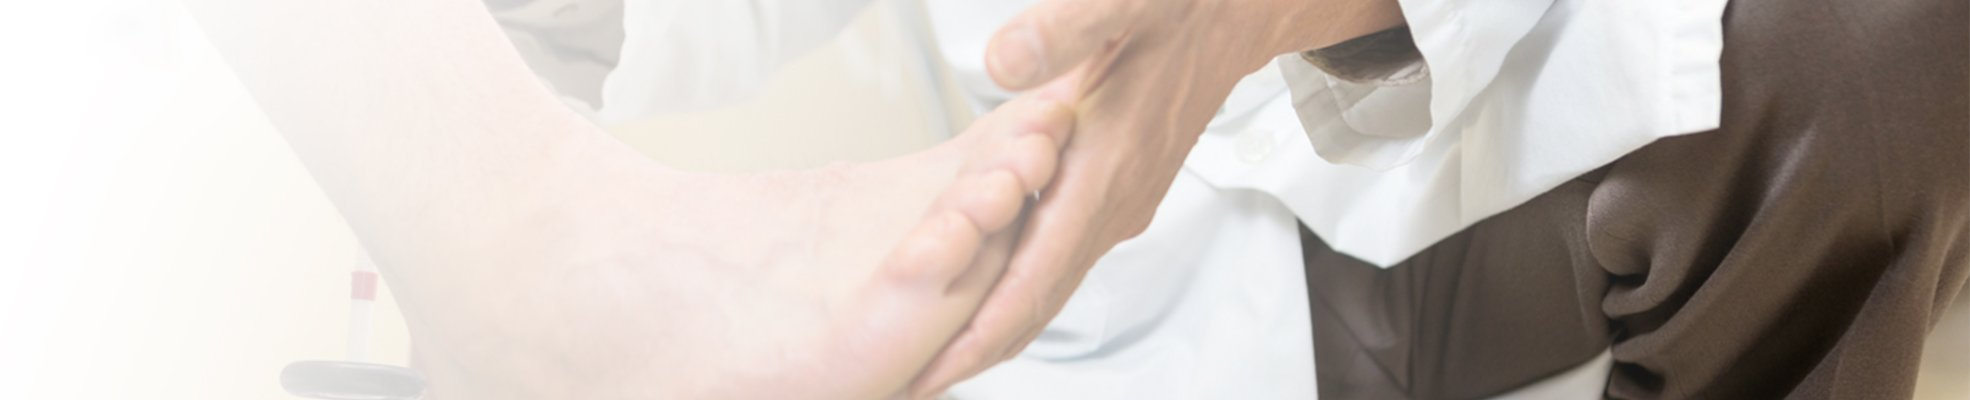 Global Podiatry Services in Chicago Diabetic Foot Care Clinic in Wheeling IL